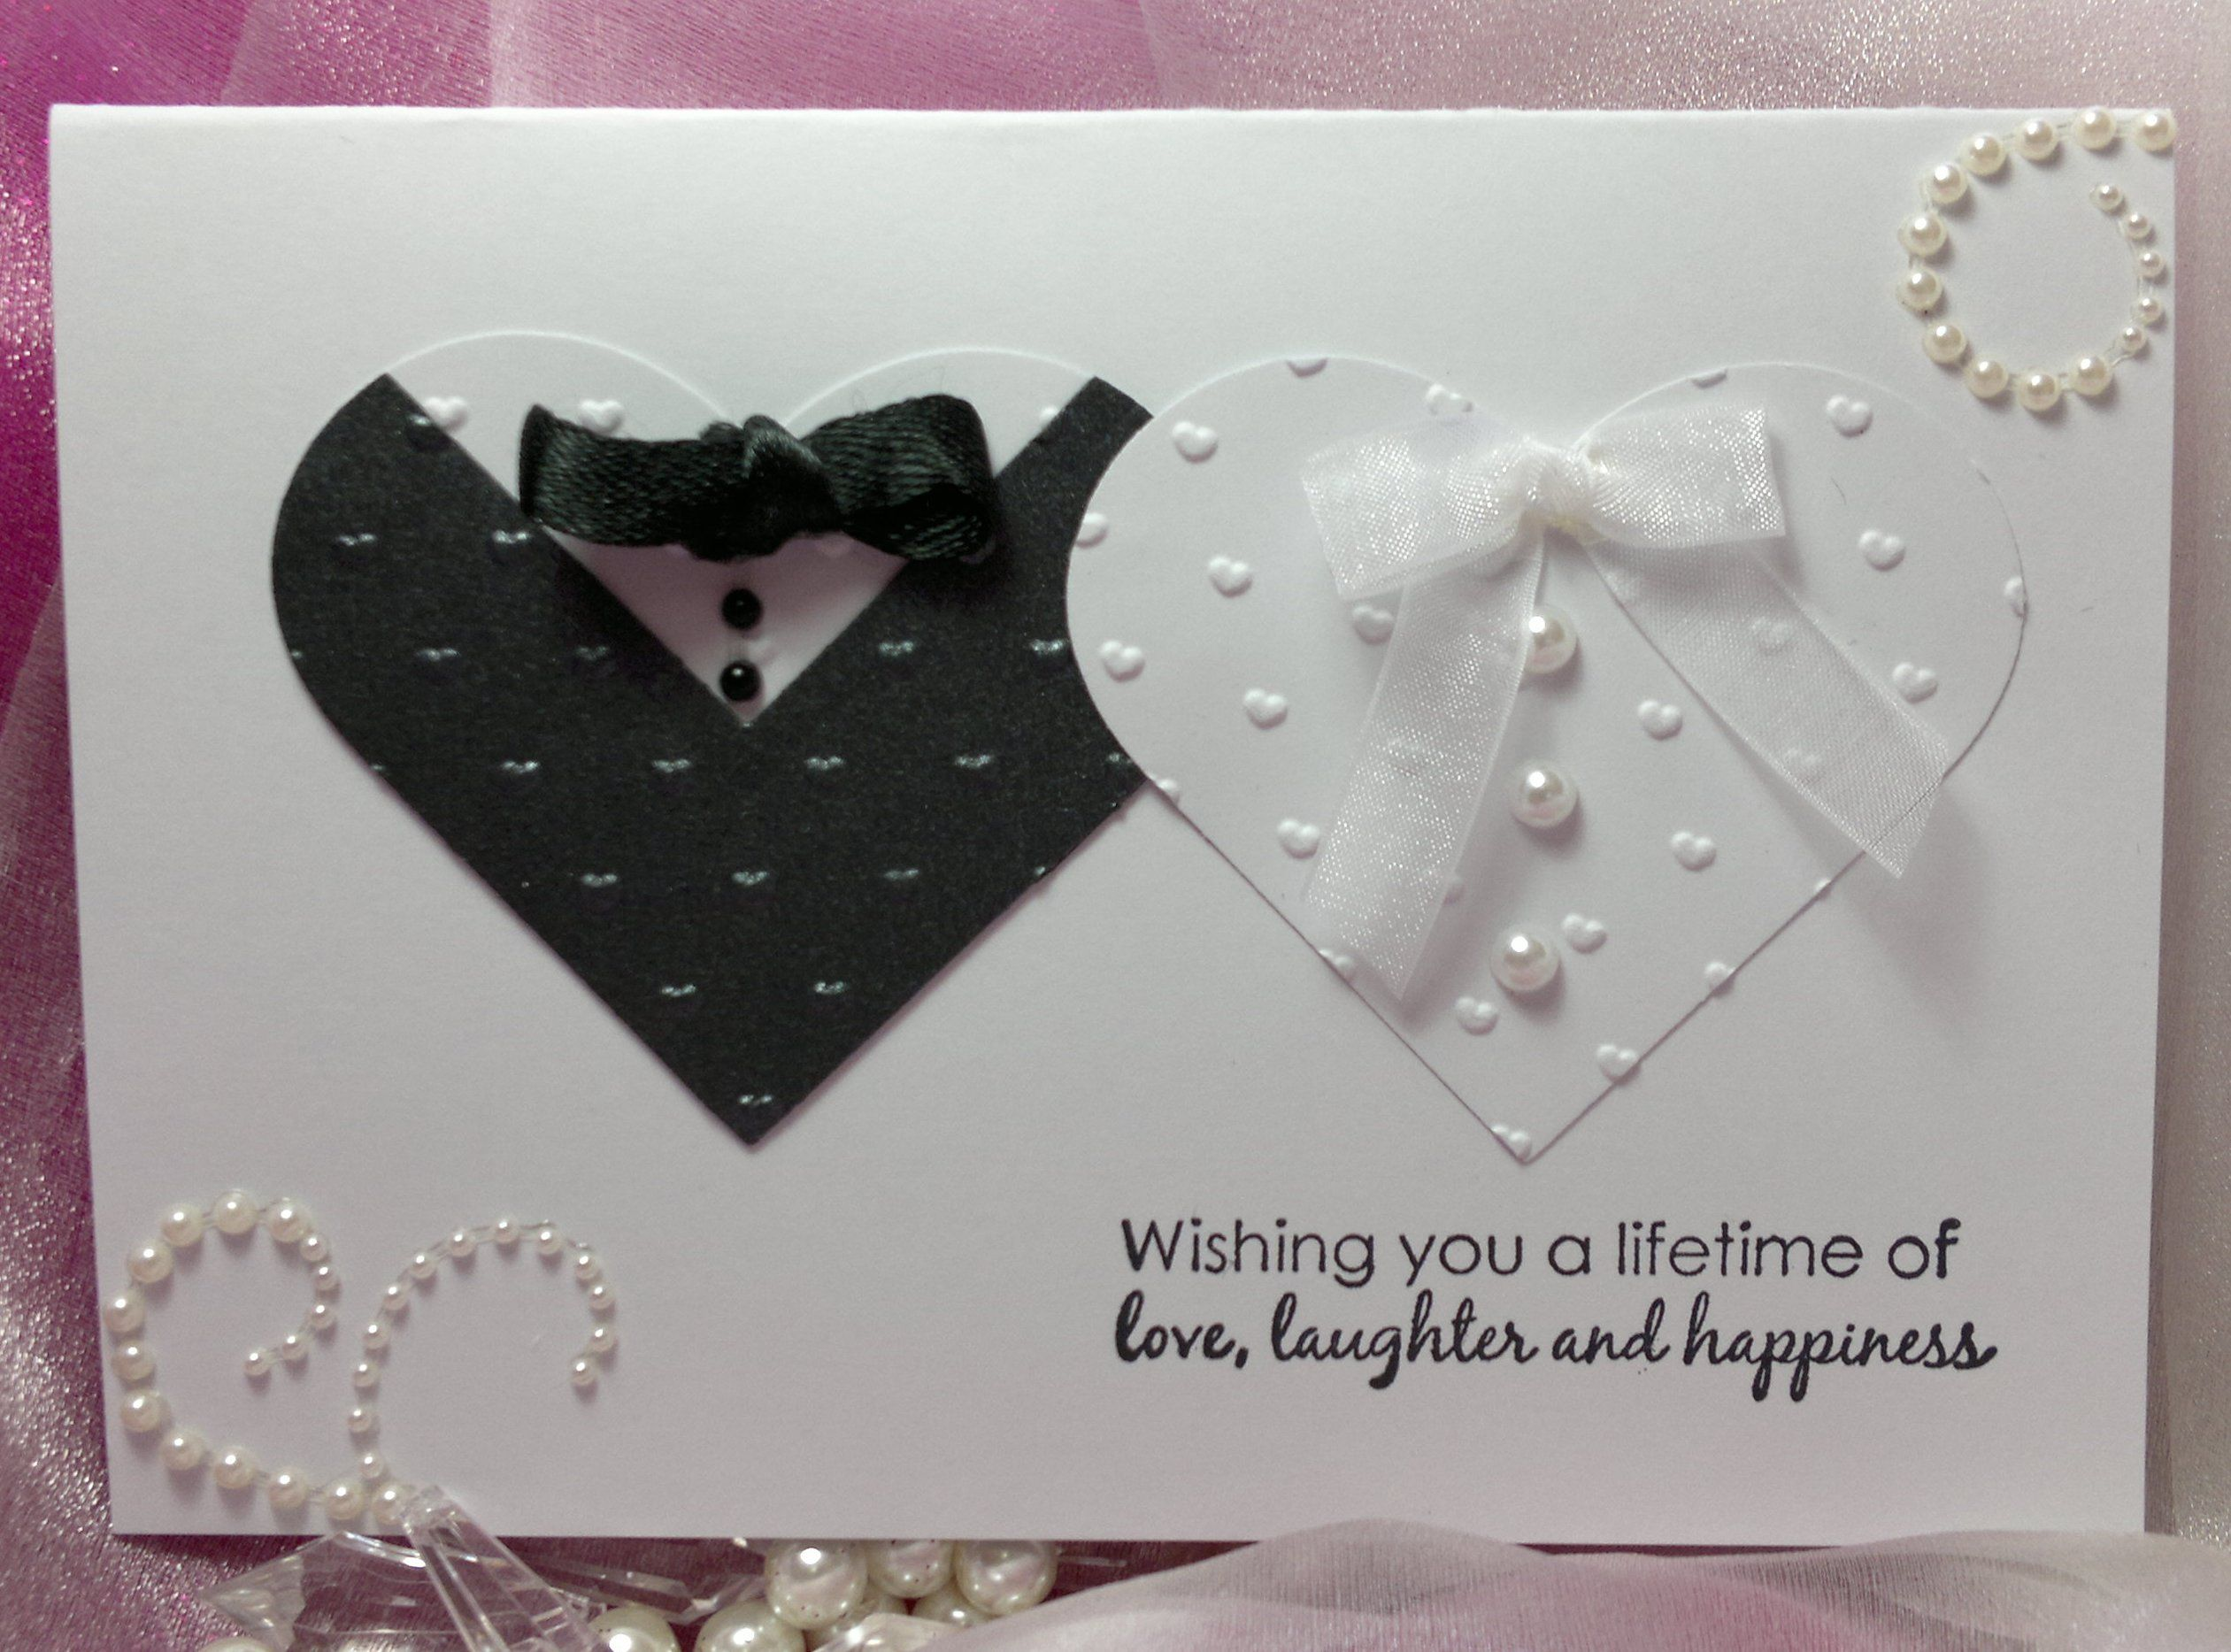 handmade cards ideas Click image to enlarge details cards